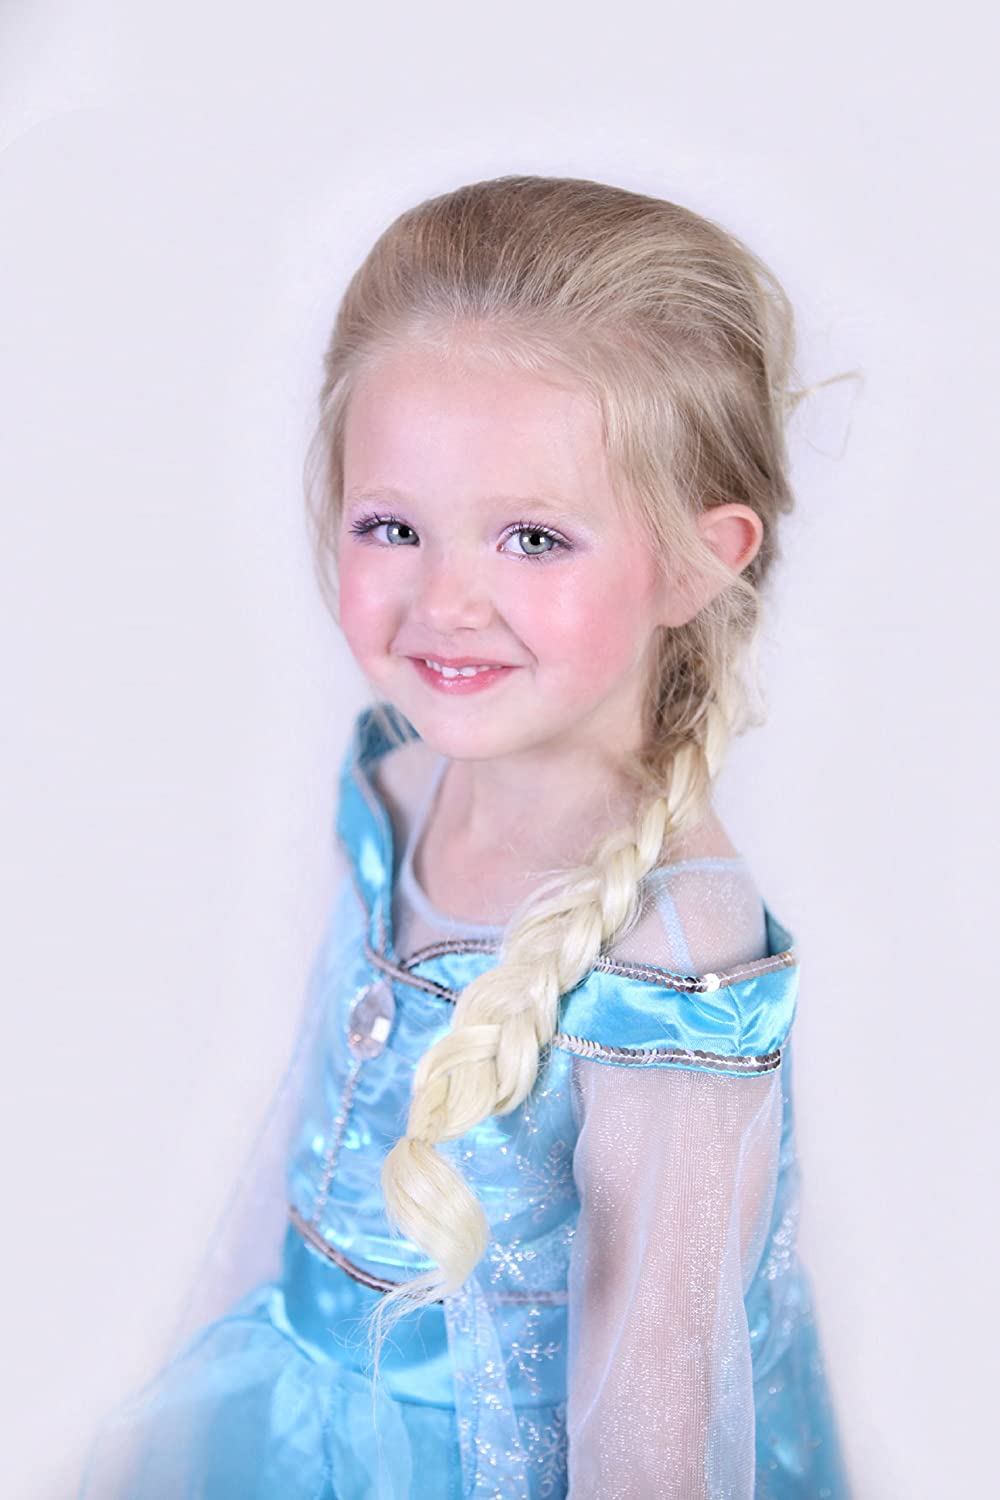 Amazon.com Authentic Disneyland Paris Elsa From Frozen Costume Dress up Kids Girls Age Size 10 Years Rare Clothing  sc 1 st  Amazon.com : authentic kids halloween costumes  - Germanpascual.Com